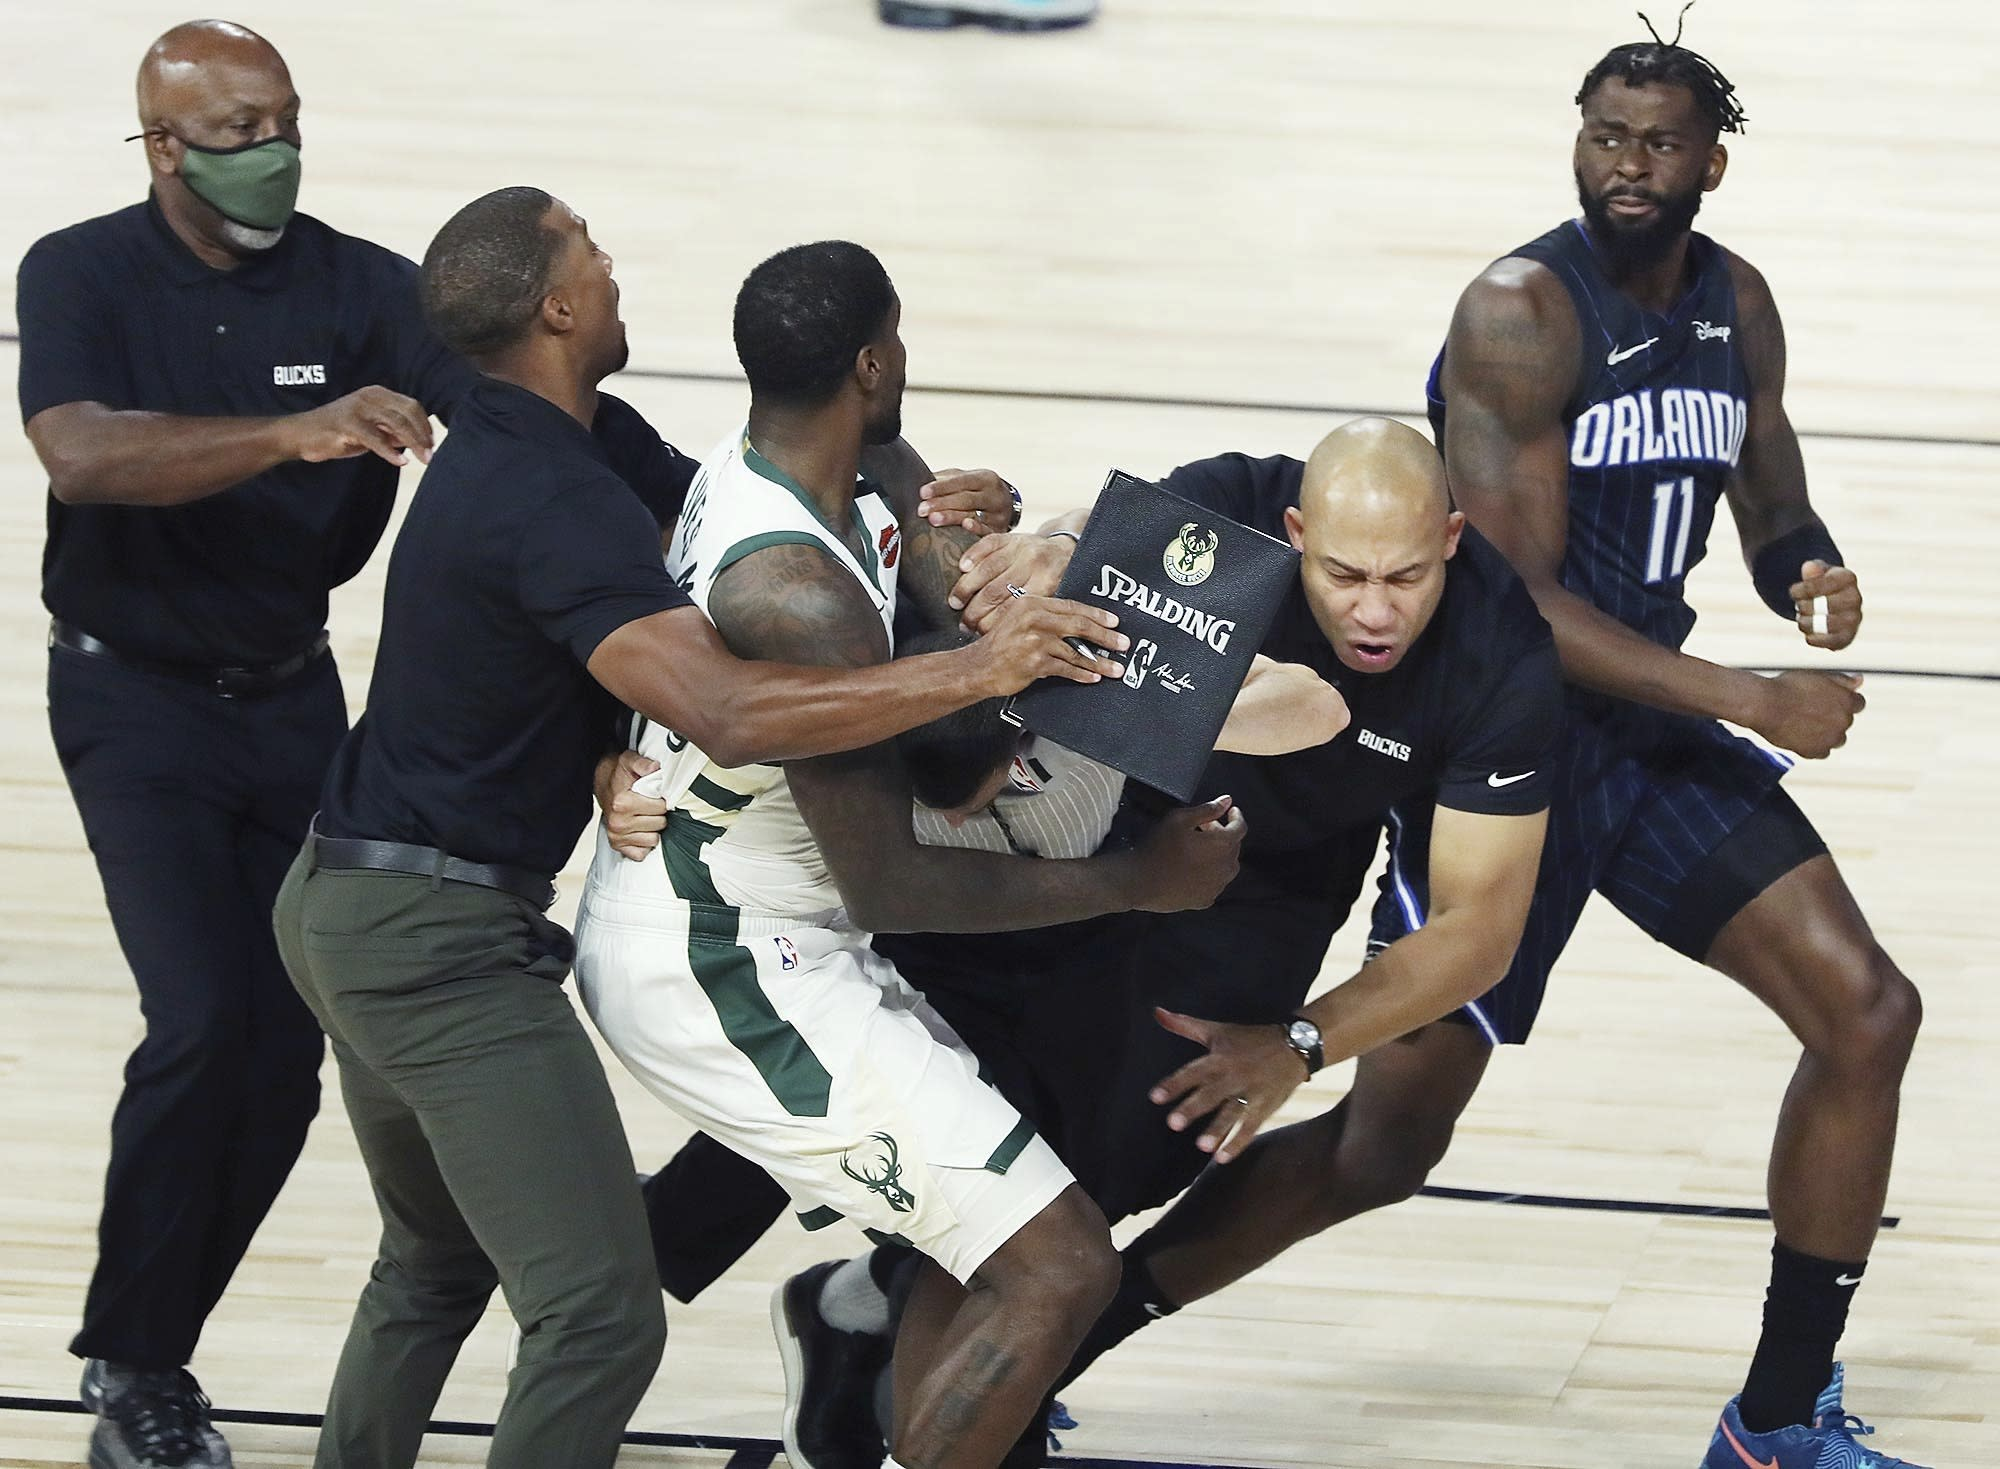 Milwaukee forward Marvin Williams (20) and Orlando forward James Ennis III (11) get into a skirmish as Milwaukee assistant coach Darvin Ham falls while breaking up the fight during Game 3 of an NBA basketball first-round playoff series, Saturday, Aug. 22, 2020, in Lake Buena Vista, Fla. 9Stephen M. Dowell/Orlando Sentinel via AP)